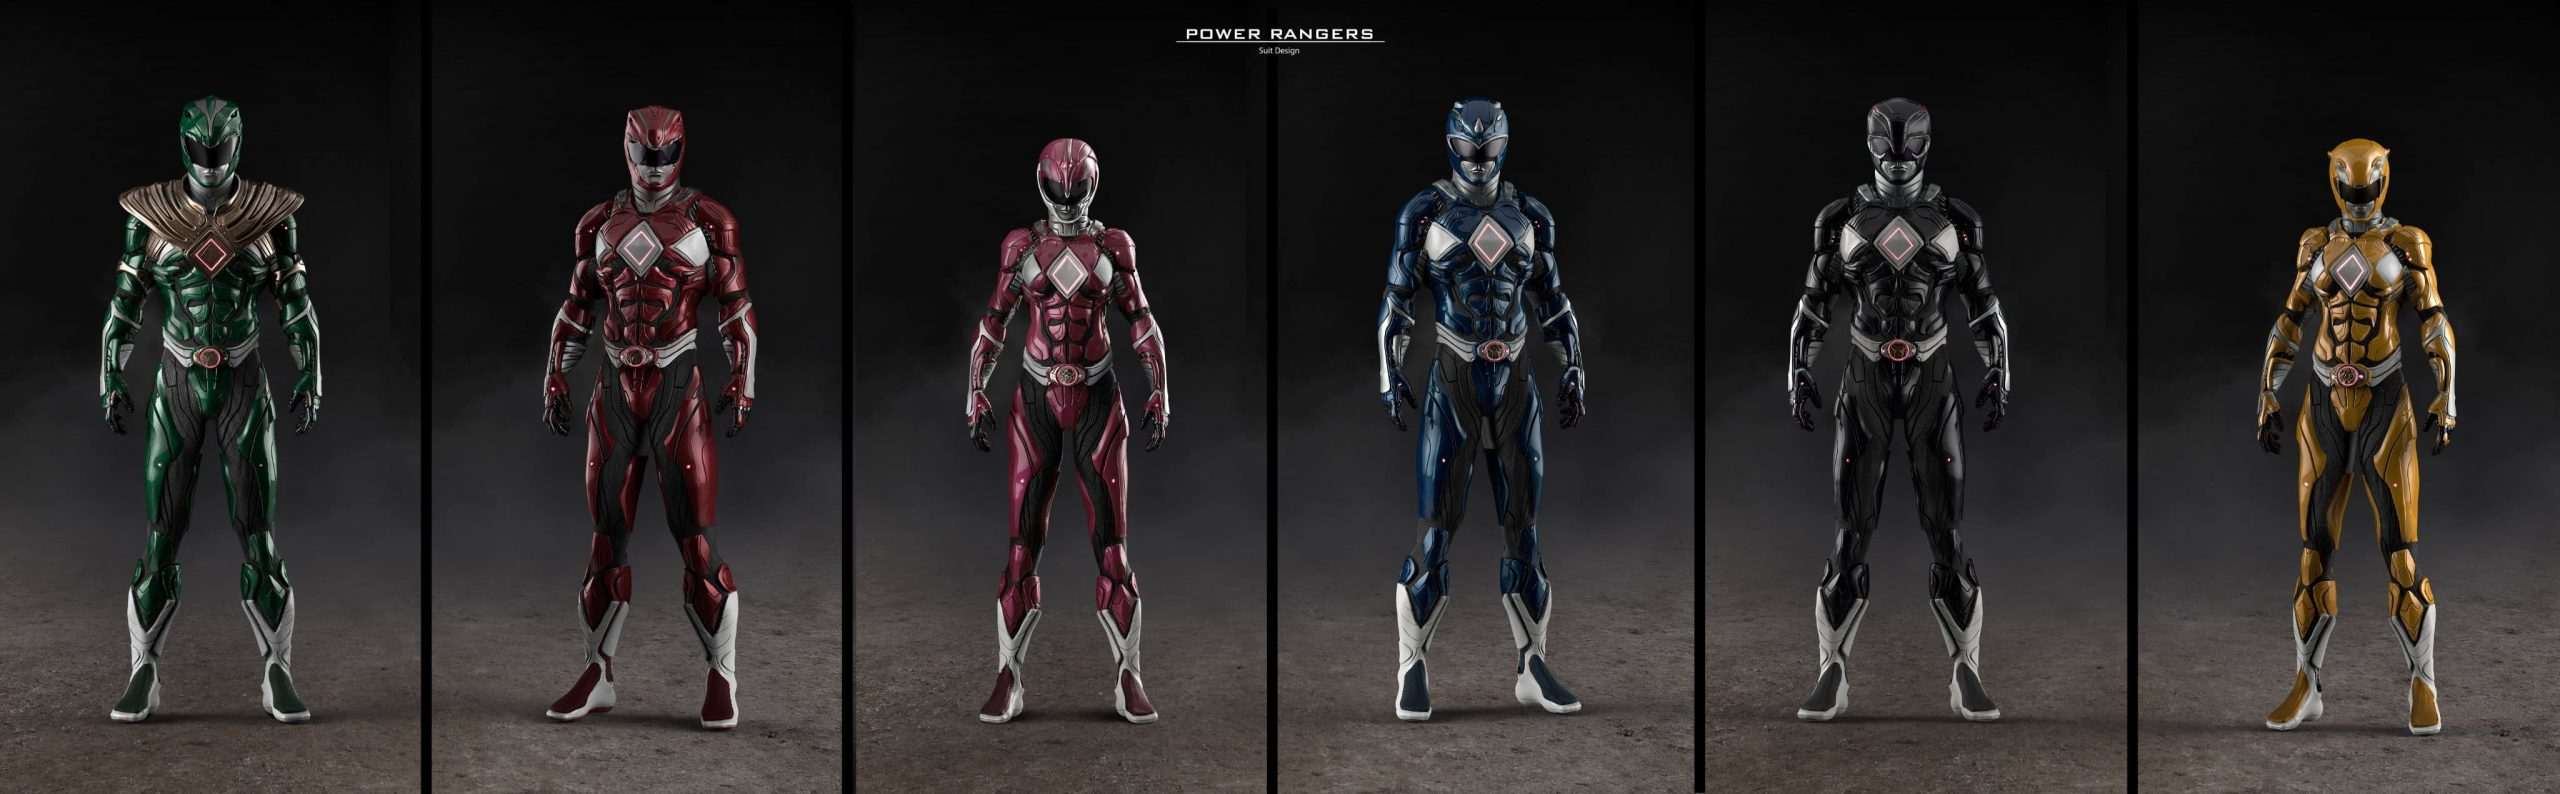 Power Rangers Project Nomad 03